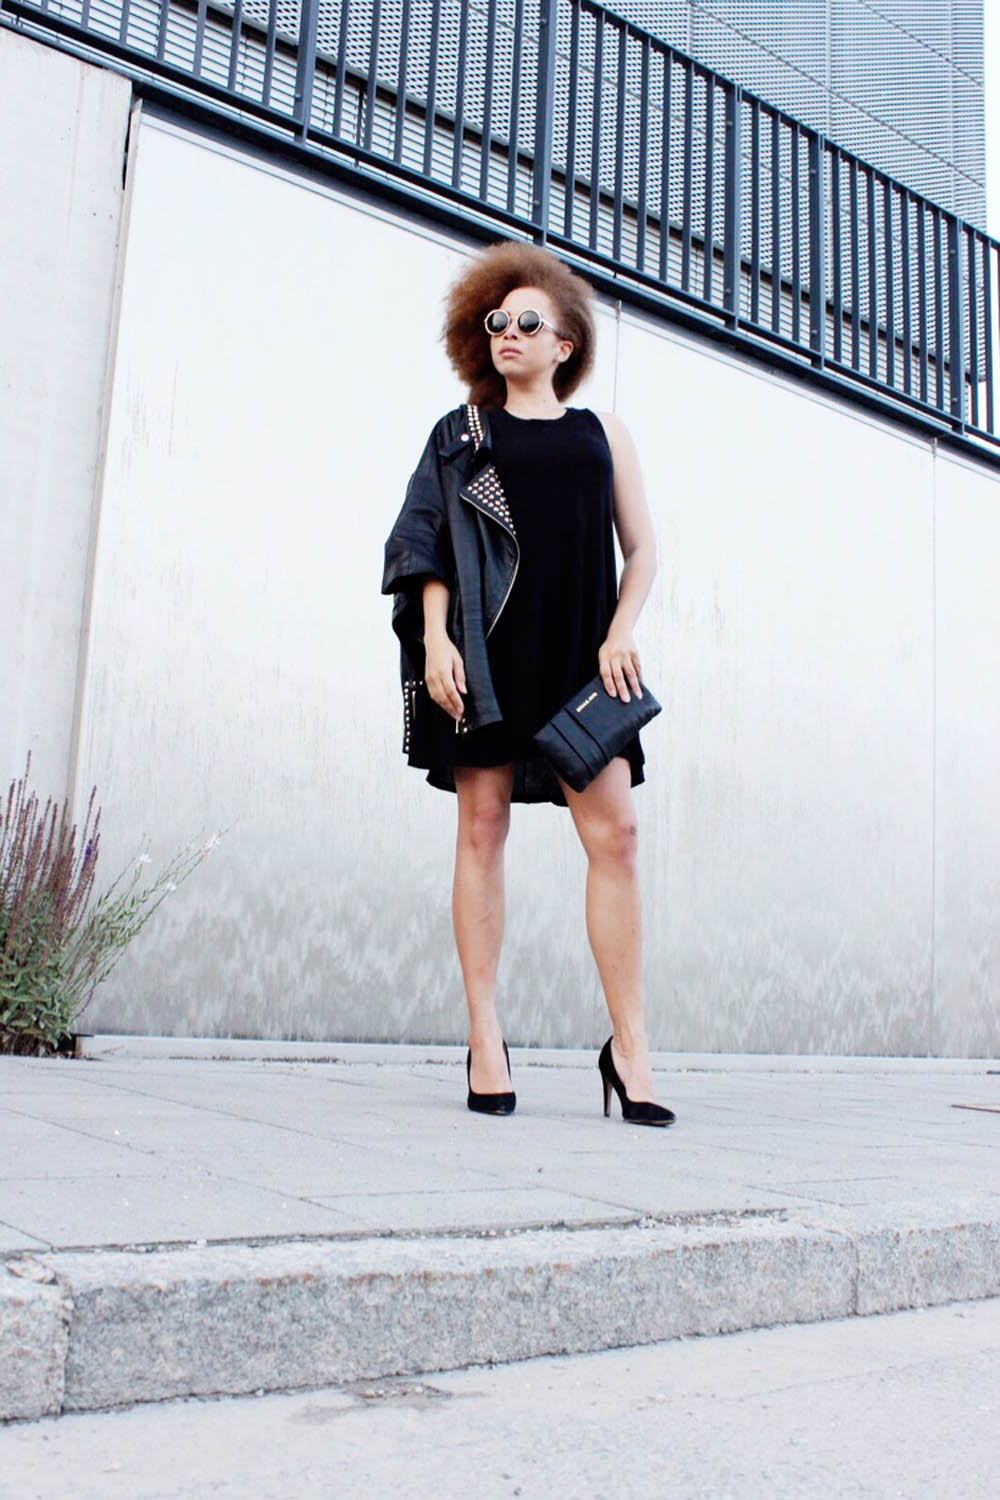 fatimayarie-blackdress-leatherjacket-heels-sunglasses-img_5029